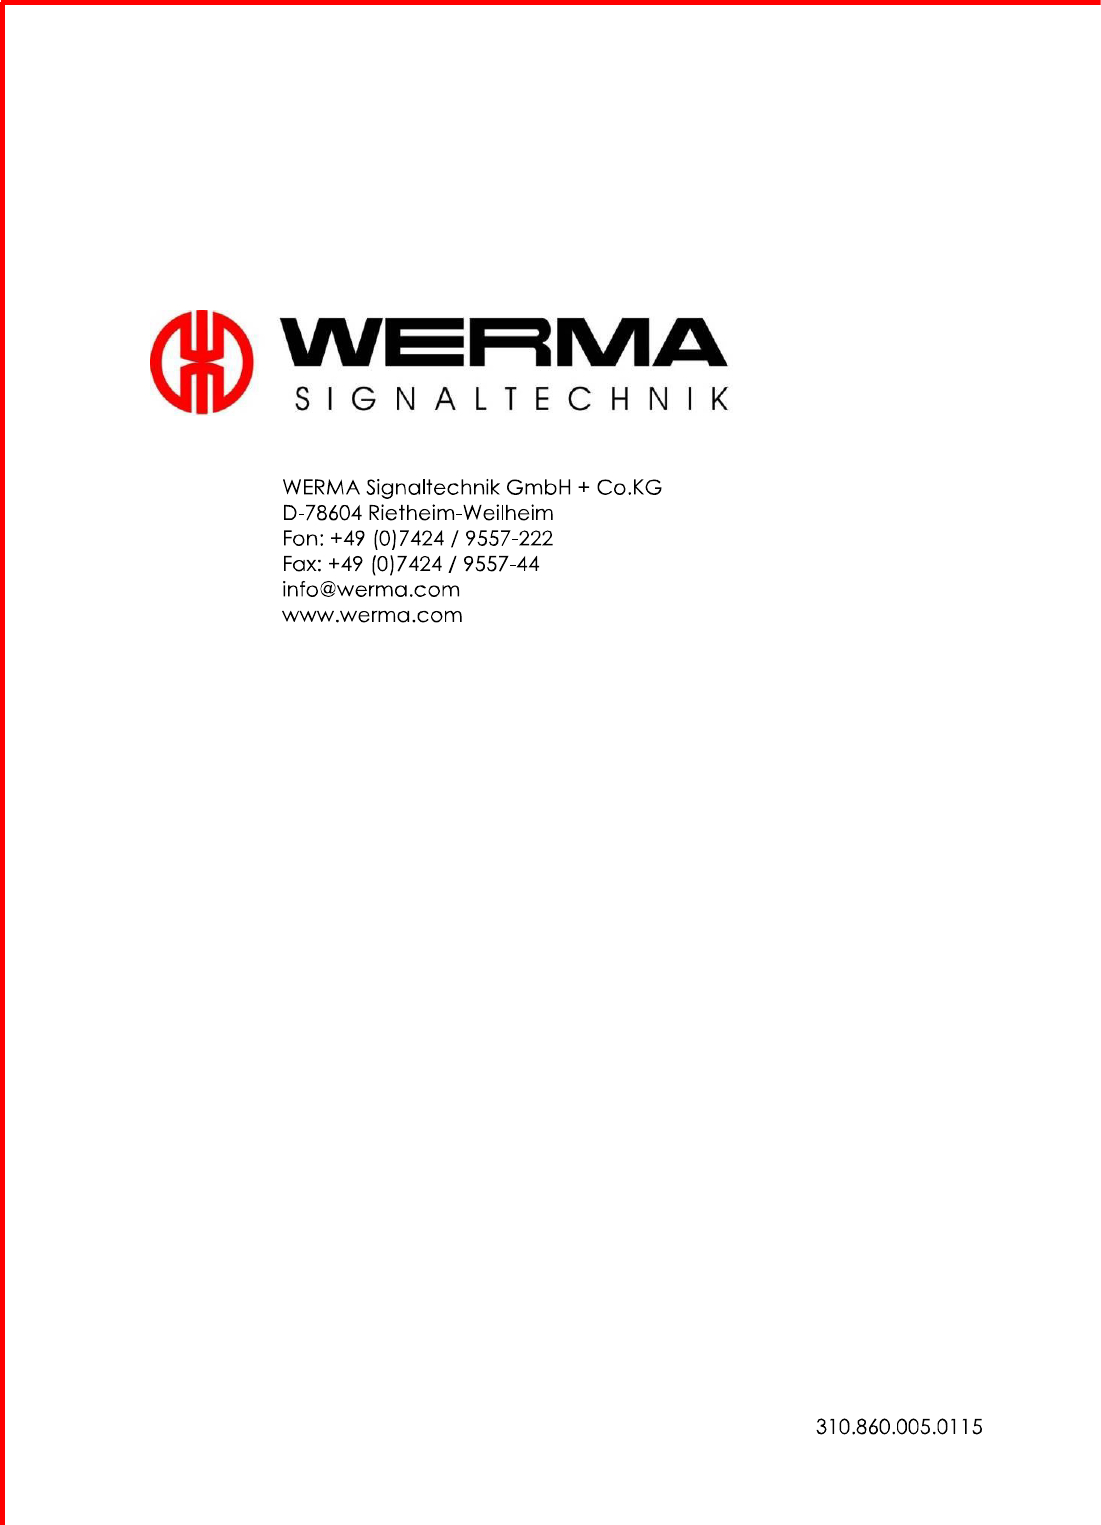 werma de 78604 wiring diagram Collection-Page 50 of WIN1 Tranceiver User Manual 5 WERMA Signaltechnik GmbH Co KG 5-r